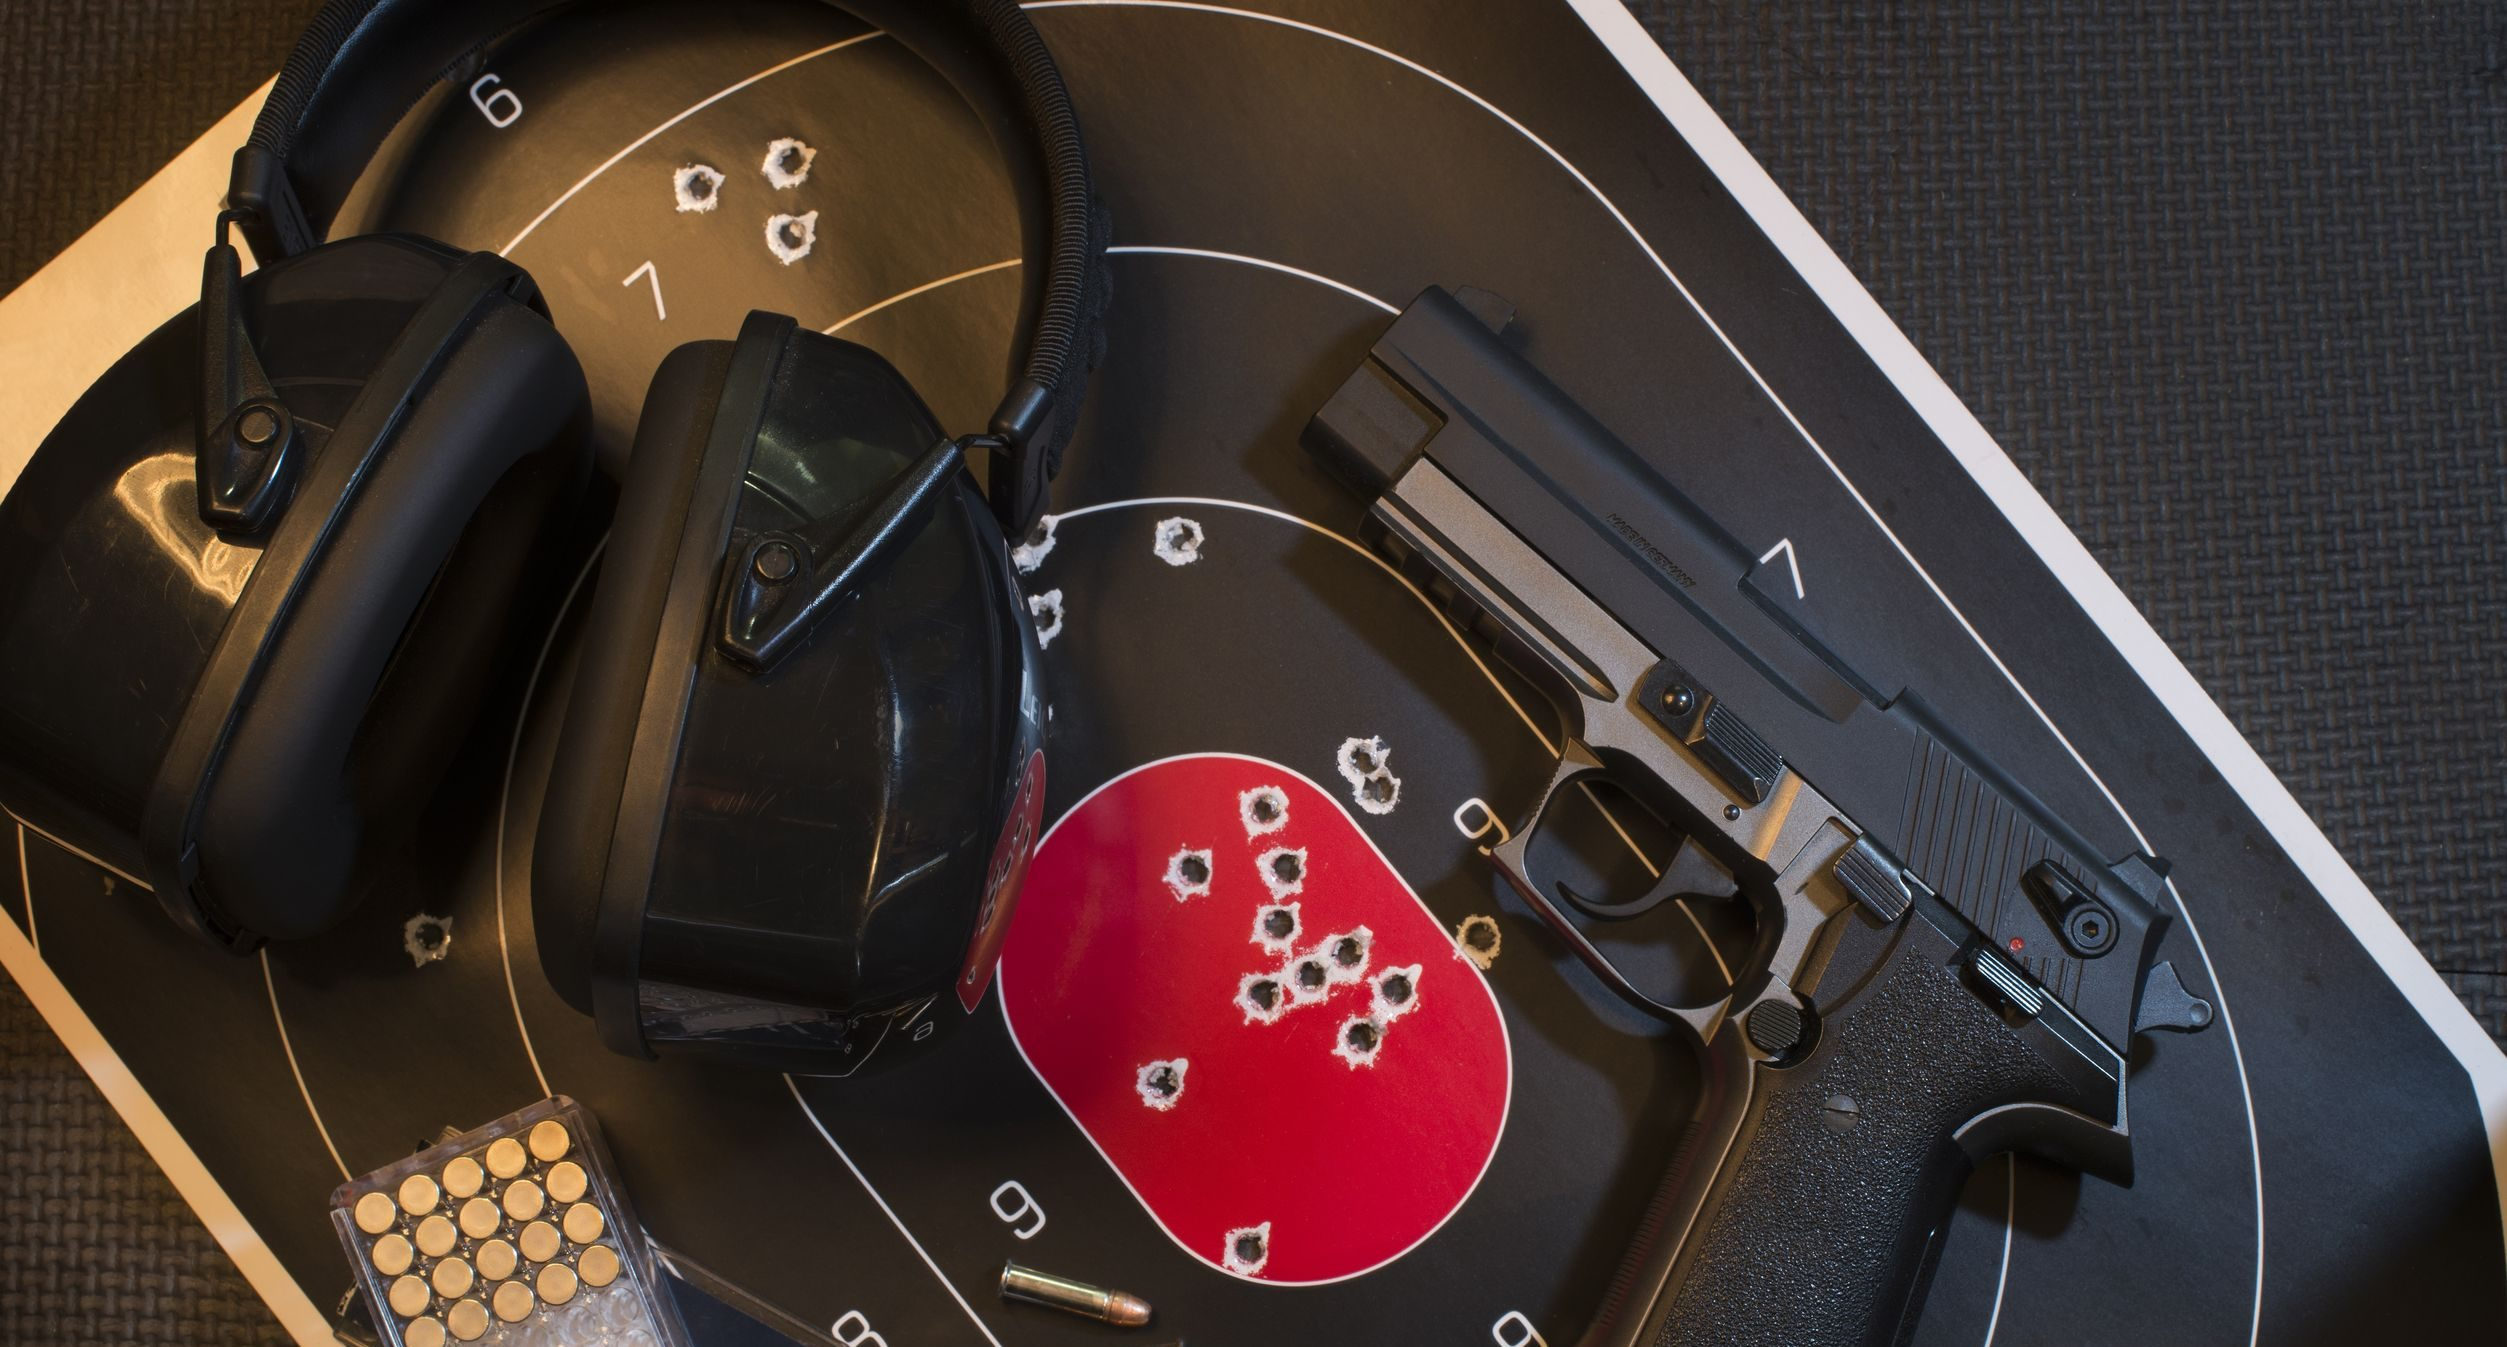 5 Facts About U.S Gun Laws You Should Know